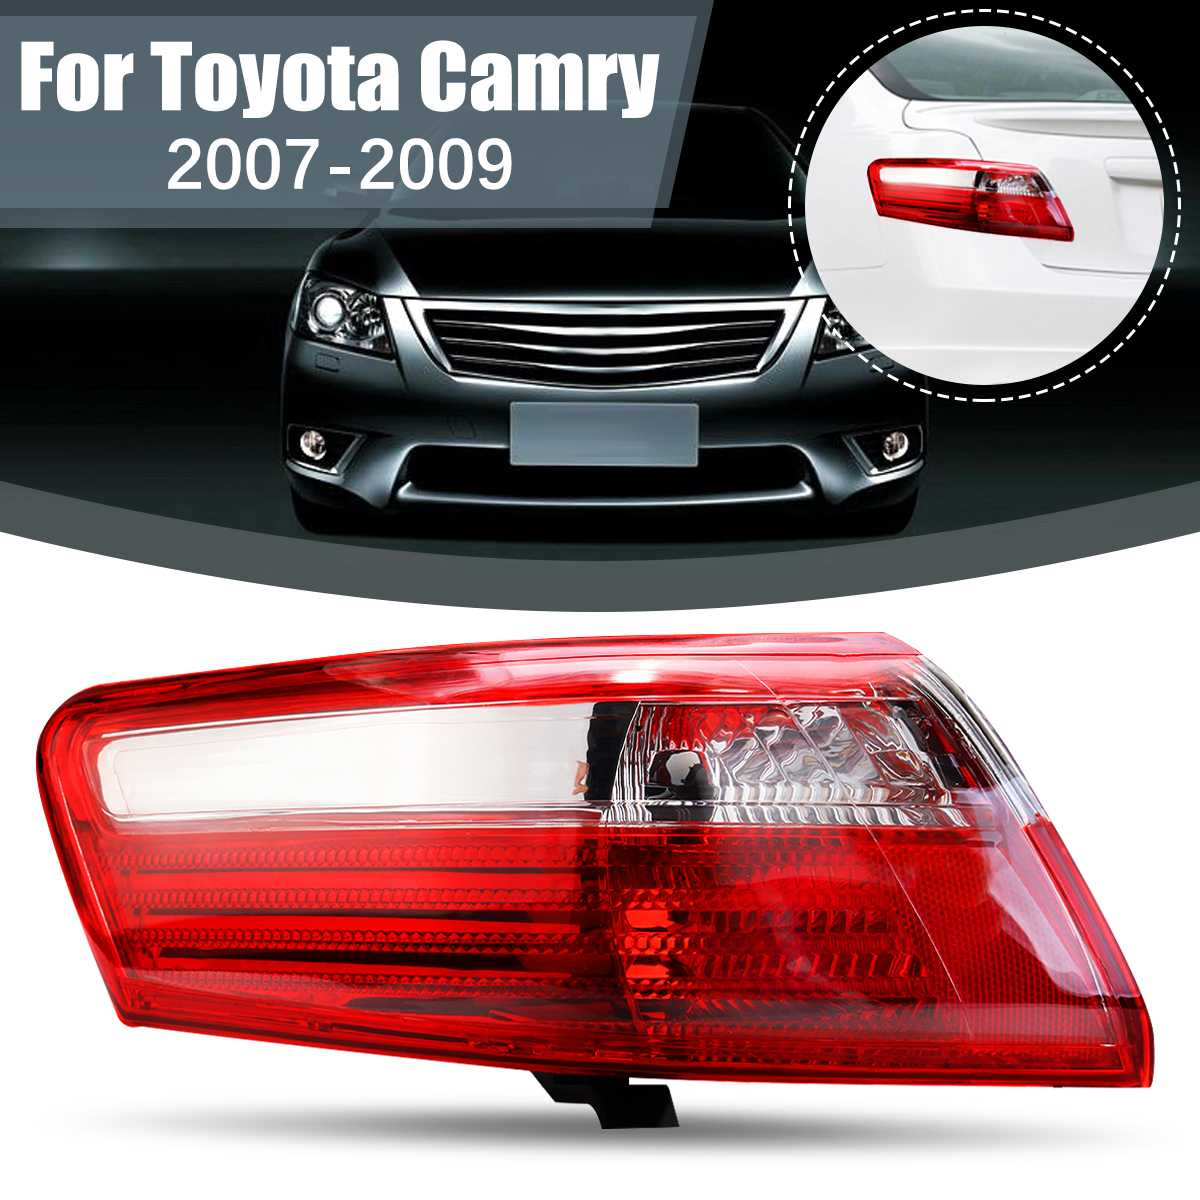 Car Tail Light Rear Fog Lamp Brake Light For Toyota <font><b>Camry</b></font> 2007 <font><b>2008</b></font> 2009 Auto Car Replacement Accessorie TO2818129 TO2818131 image